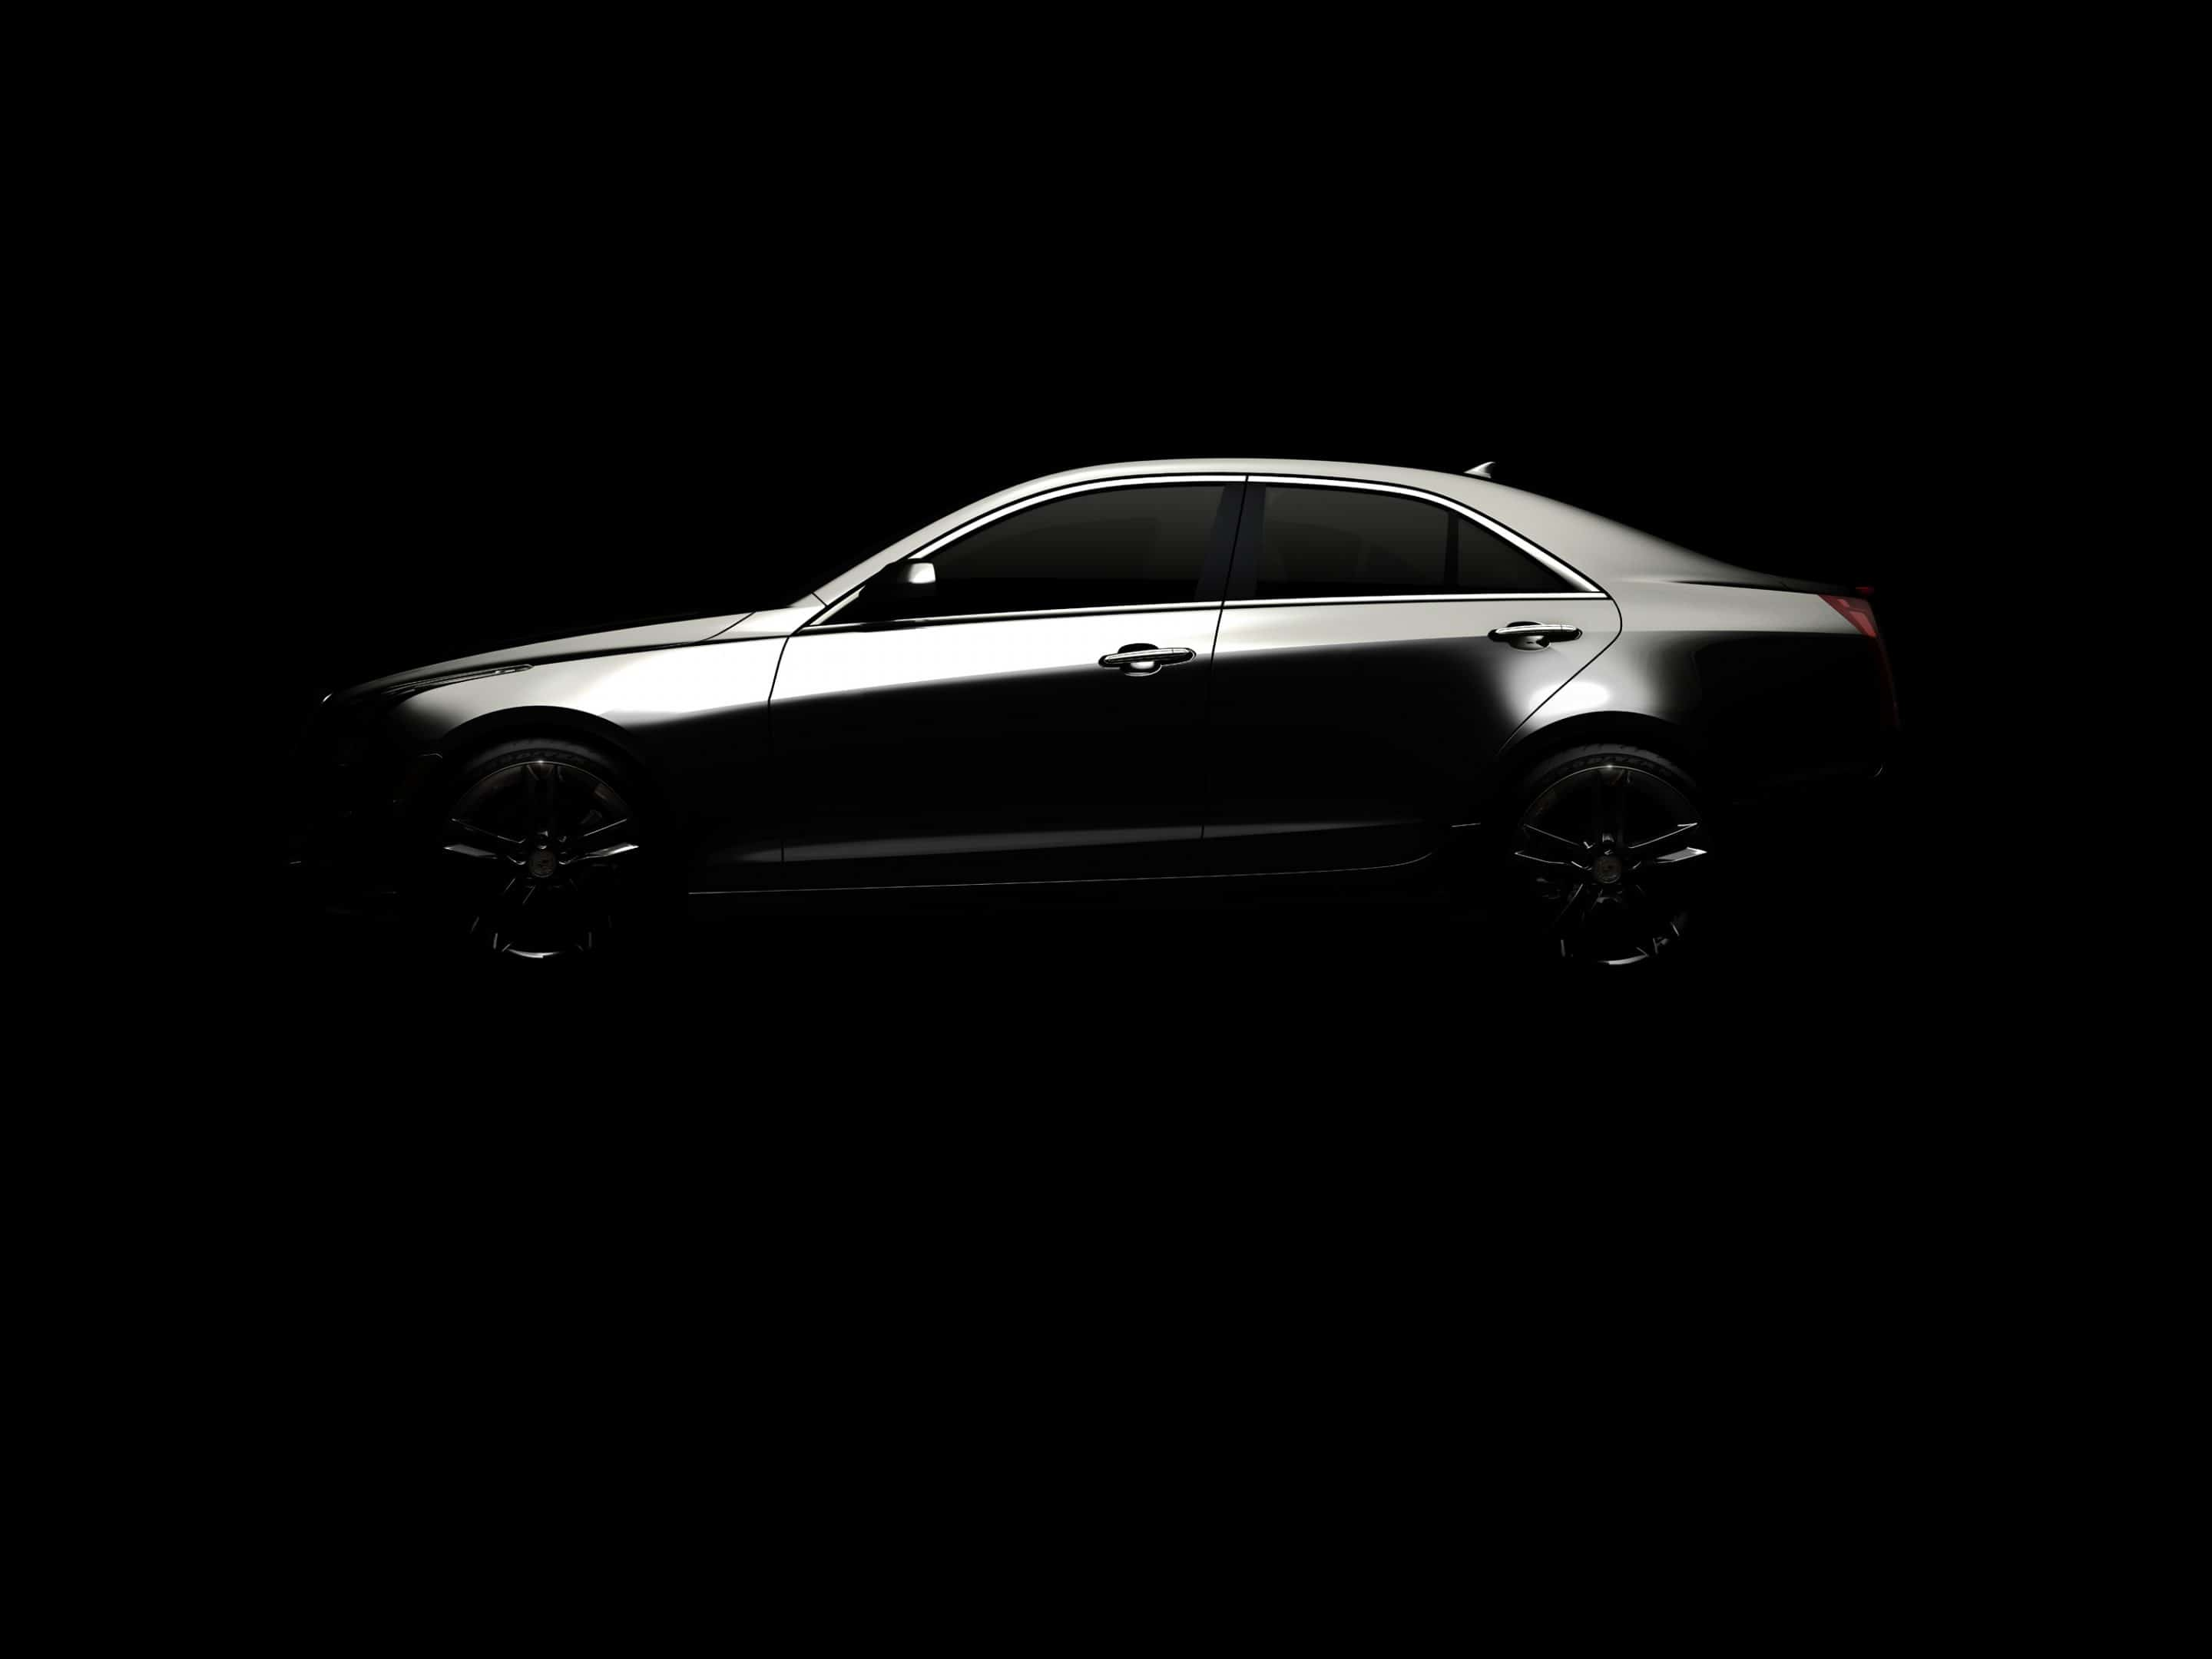 First Look Cadillac Ats Entry Luxury Car Thedetroitbureau Com